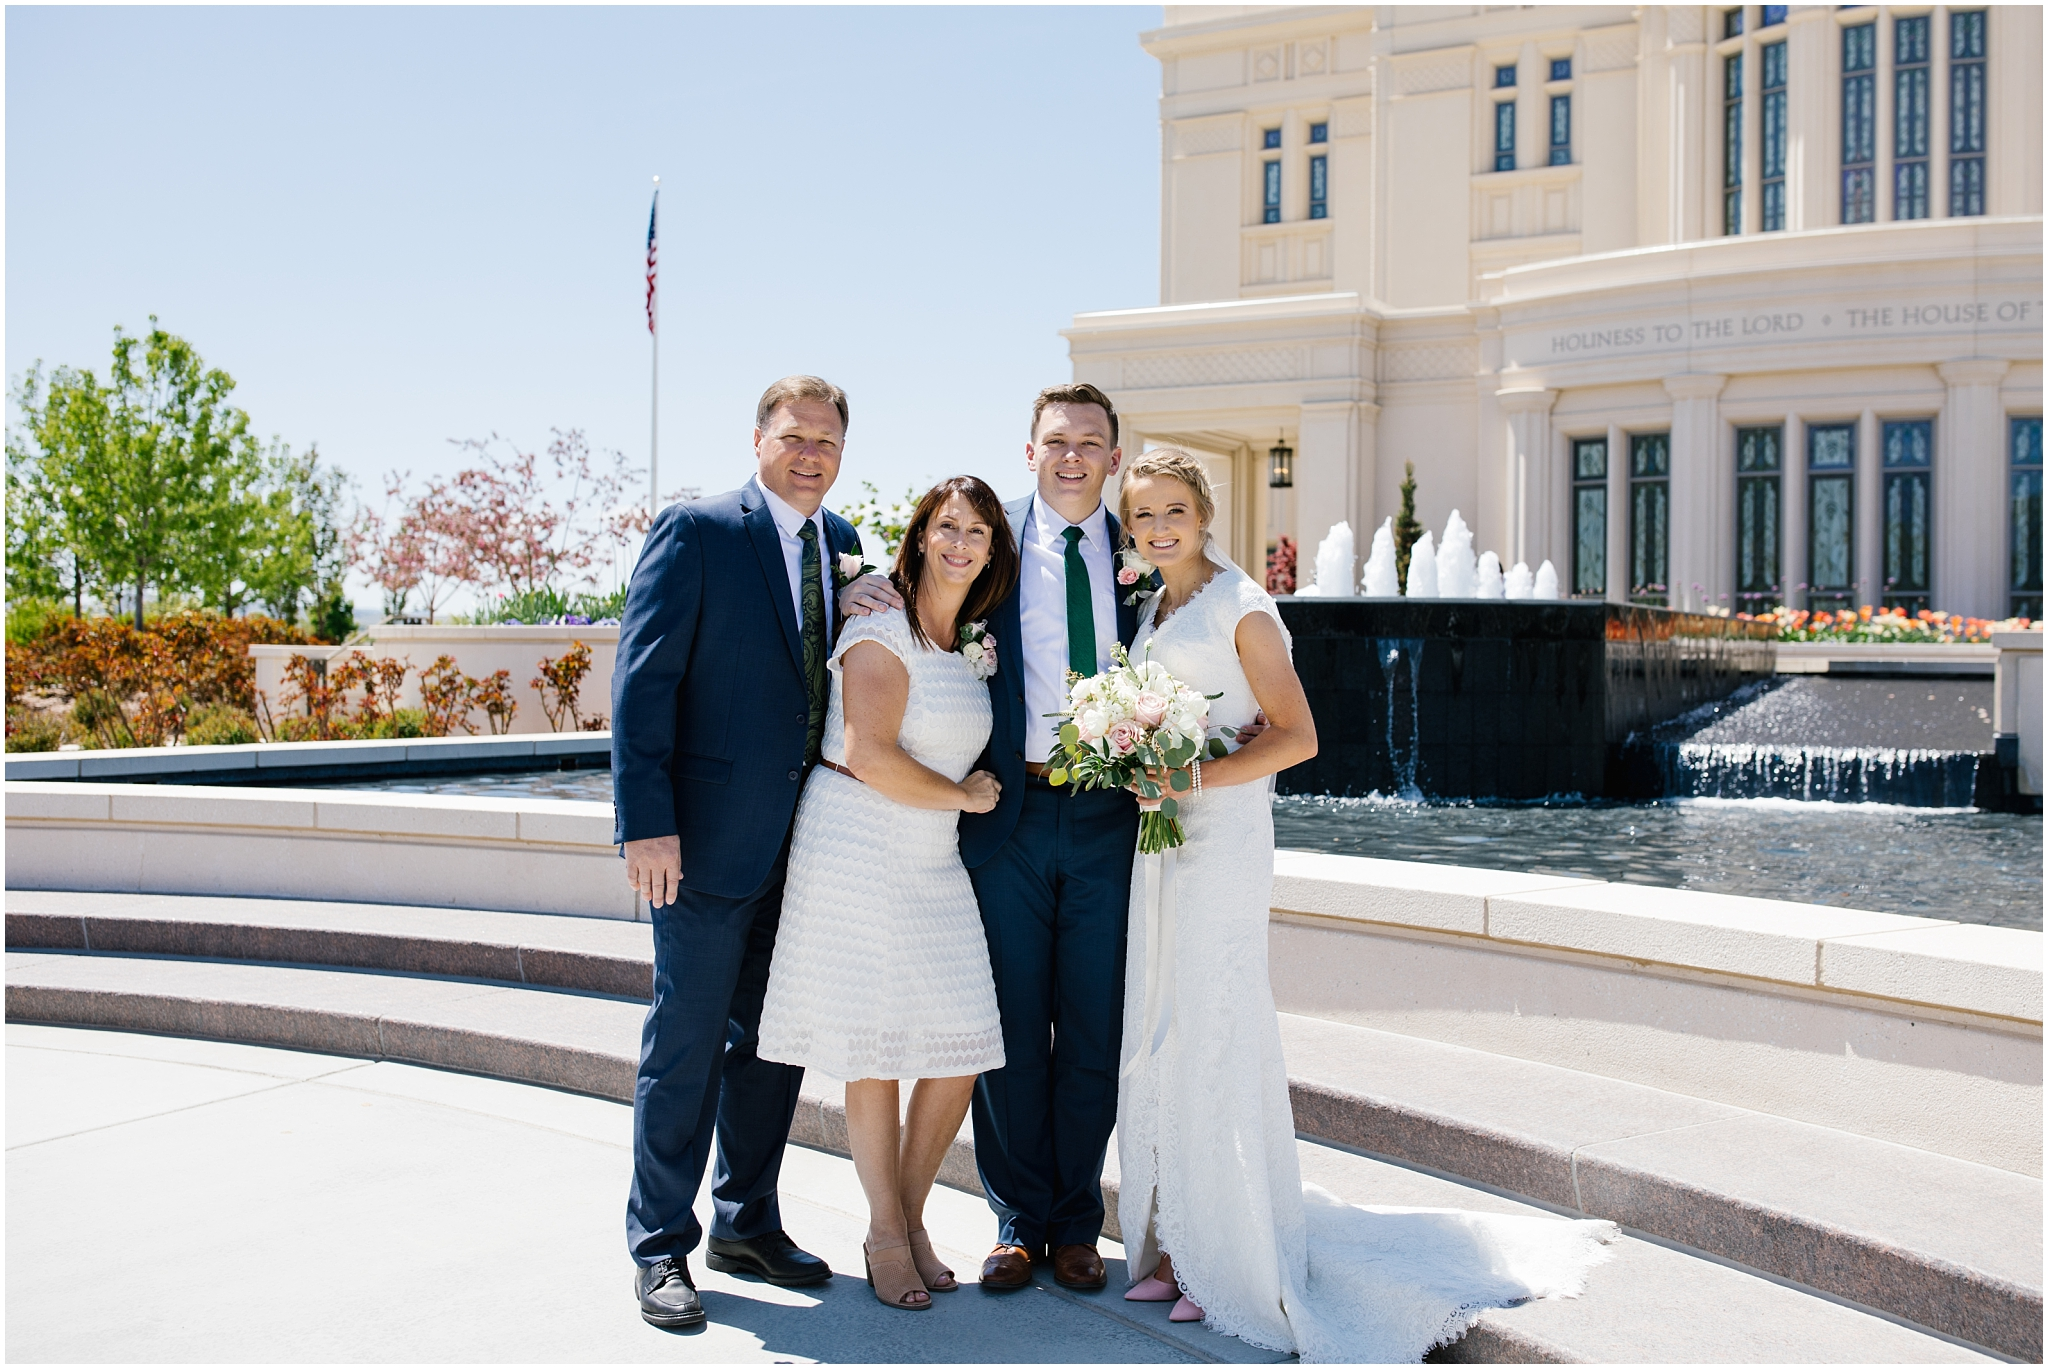 Lizzie-B-Imagery-Utah-Wedding-Photographer-Thanksgiving-Point-Payson-Temple_0041.jpg